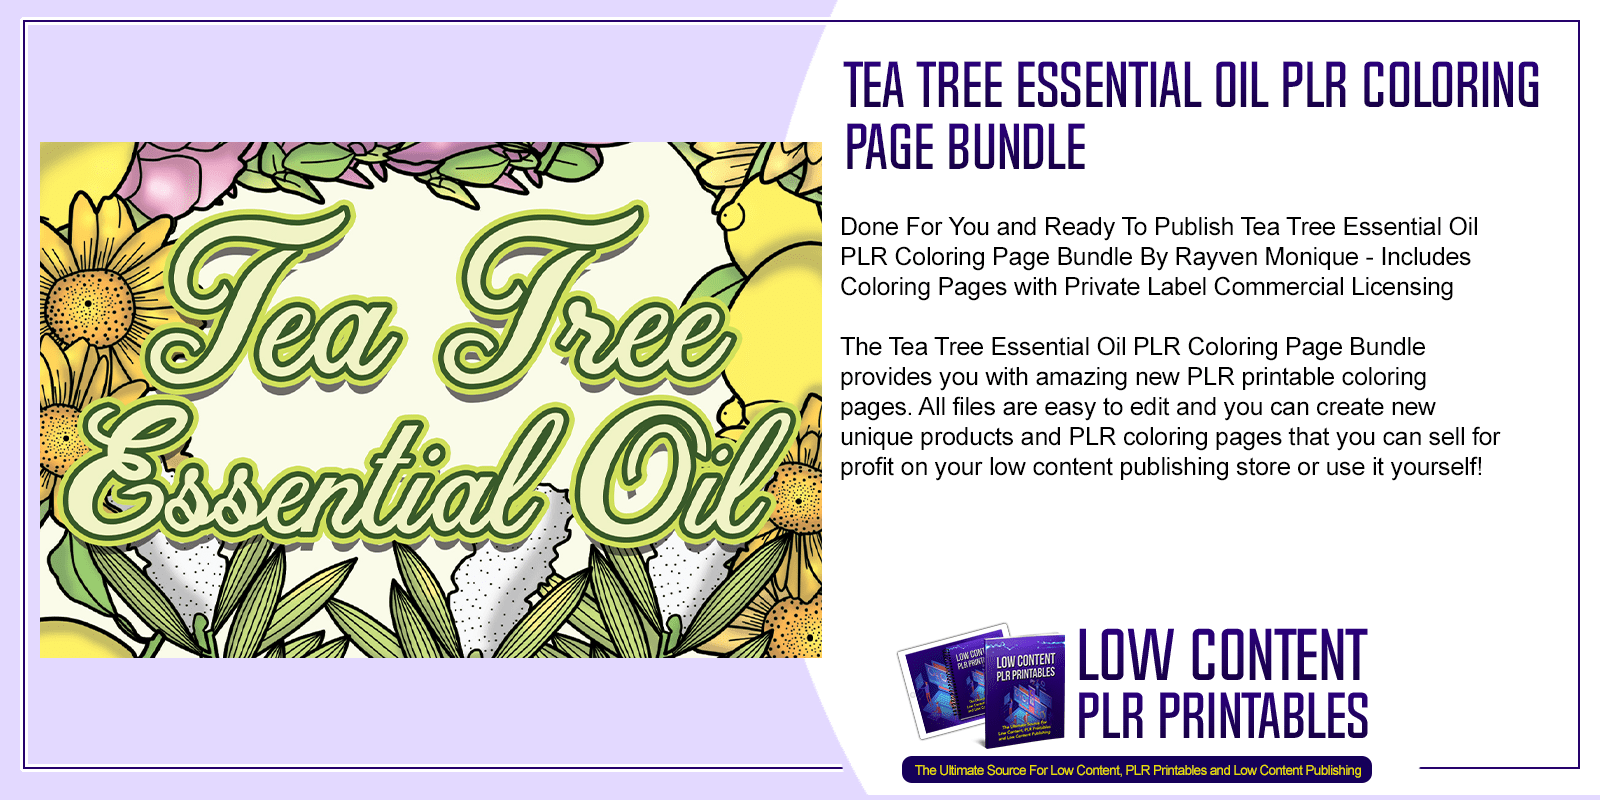 Tea Tree Essential Oil PLR Coloring Page Bundle